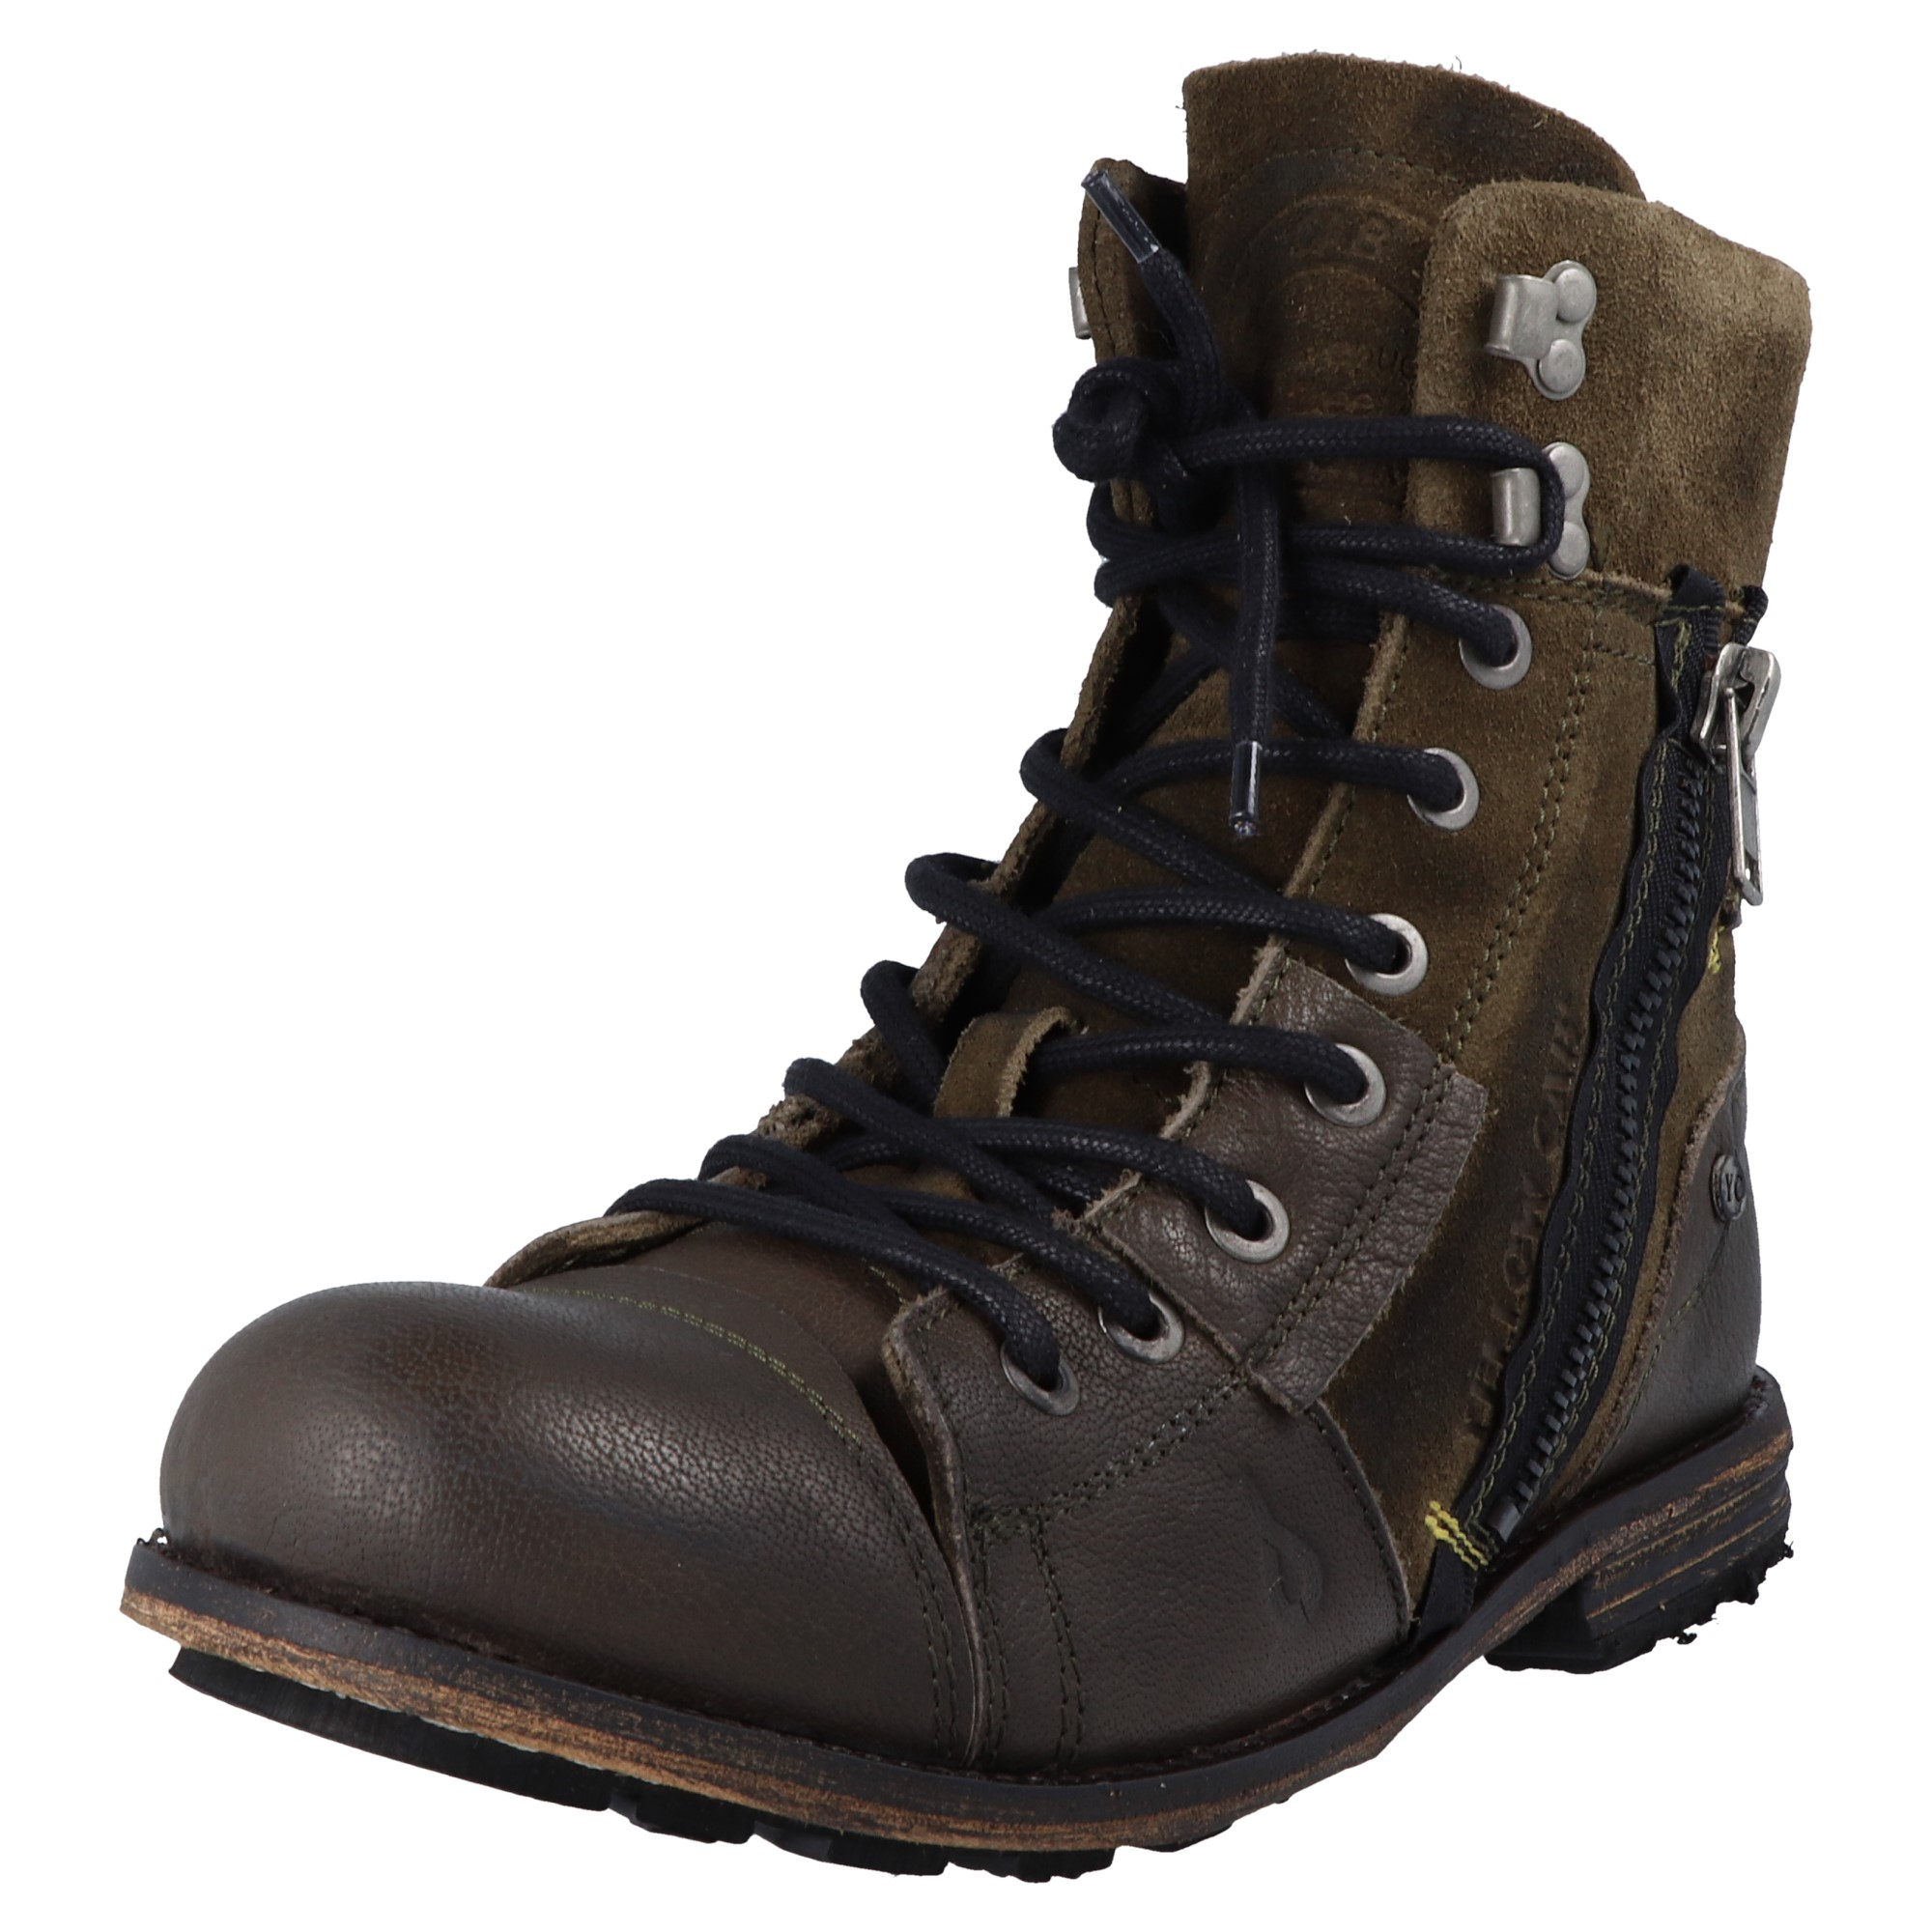 Cab Industrial Yellow Boots Shoes Show Original Title Y18069 About Green Leather M Details Bestseller Mens uFJcKTl31